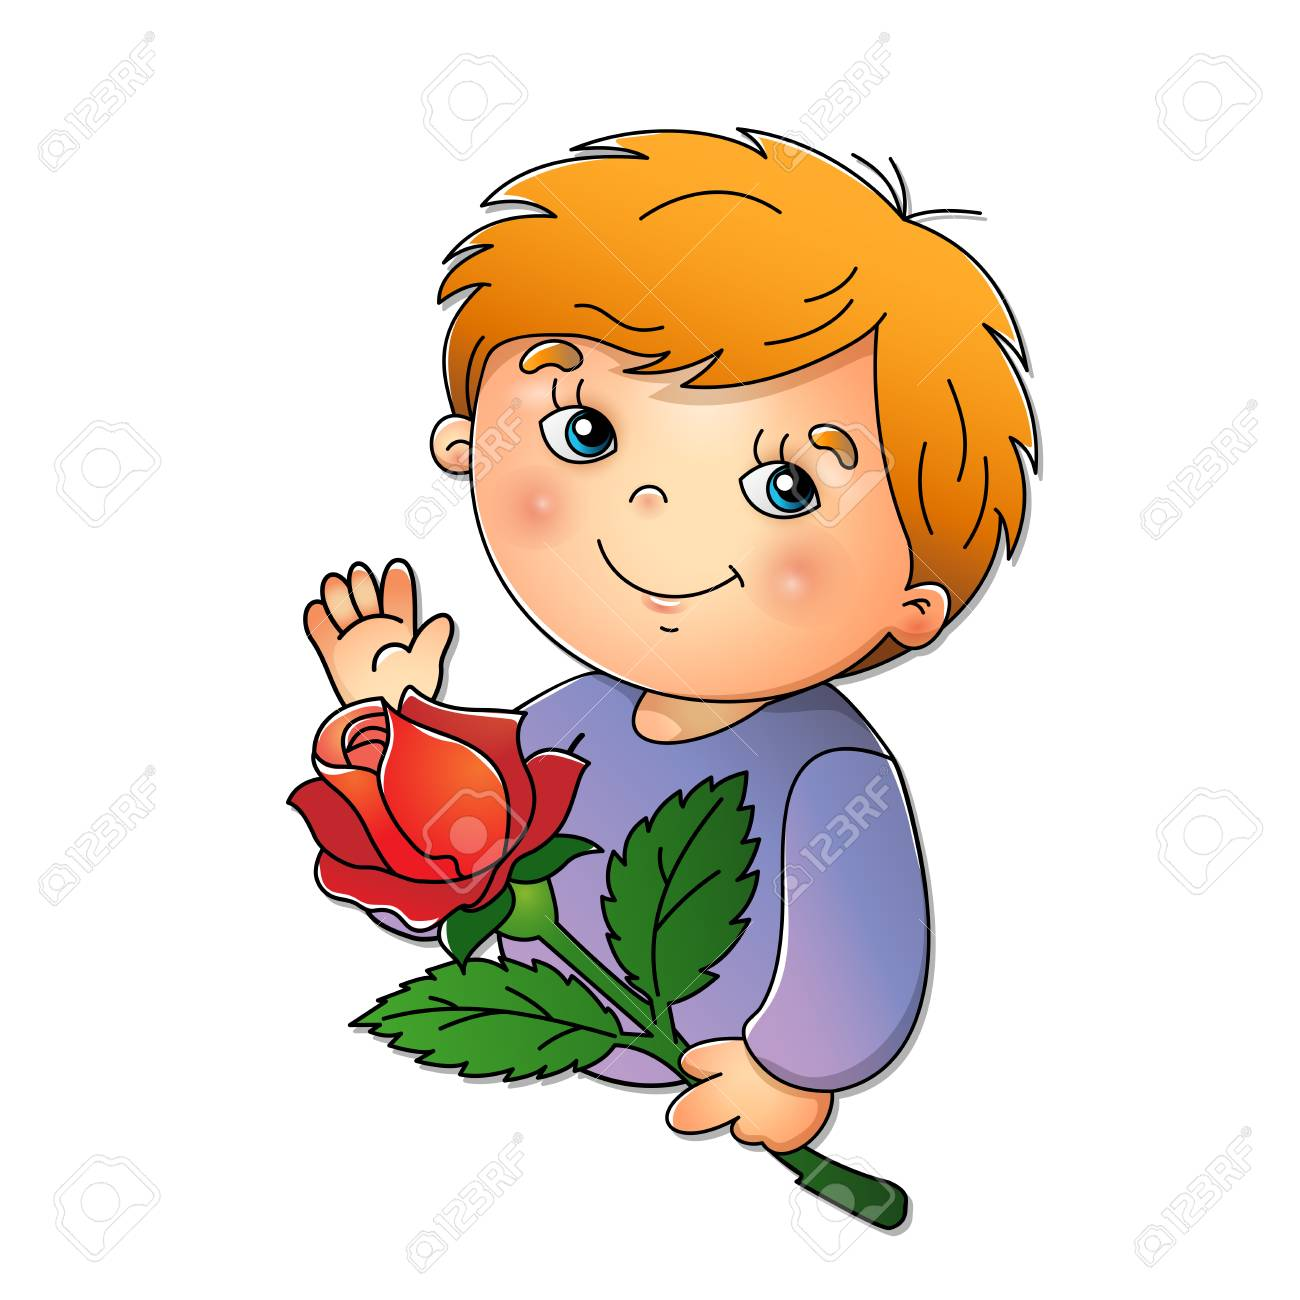 Cute boy holding a flower isolated on white background.